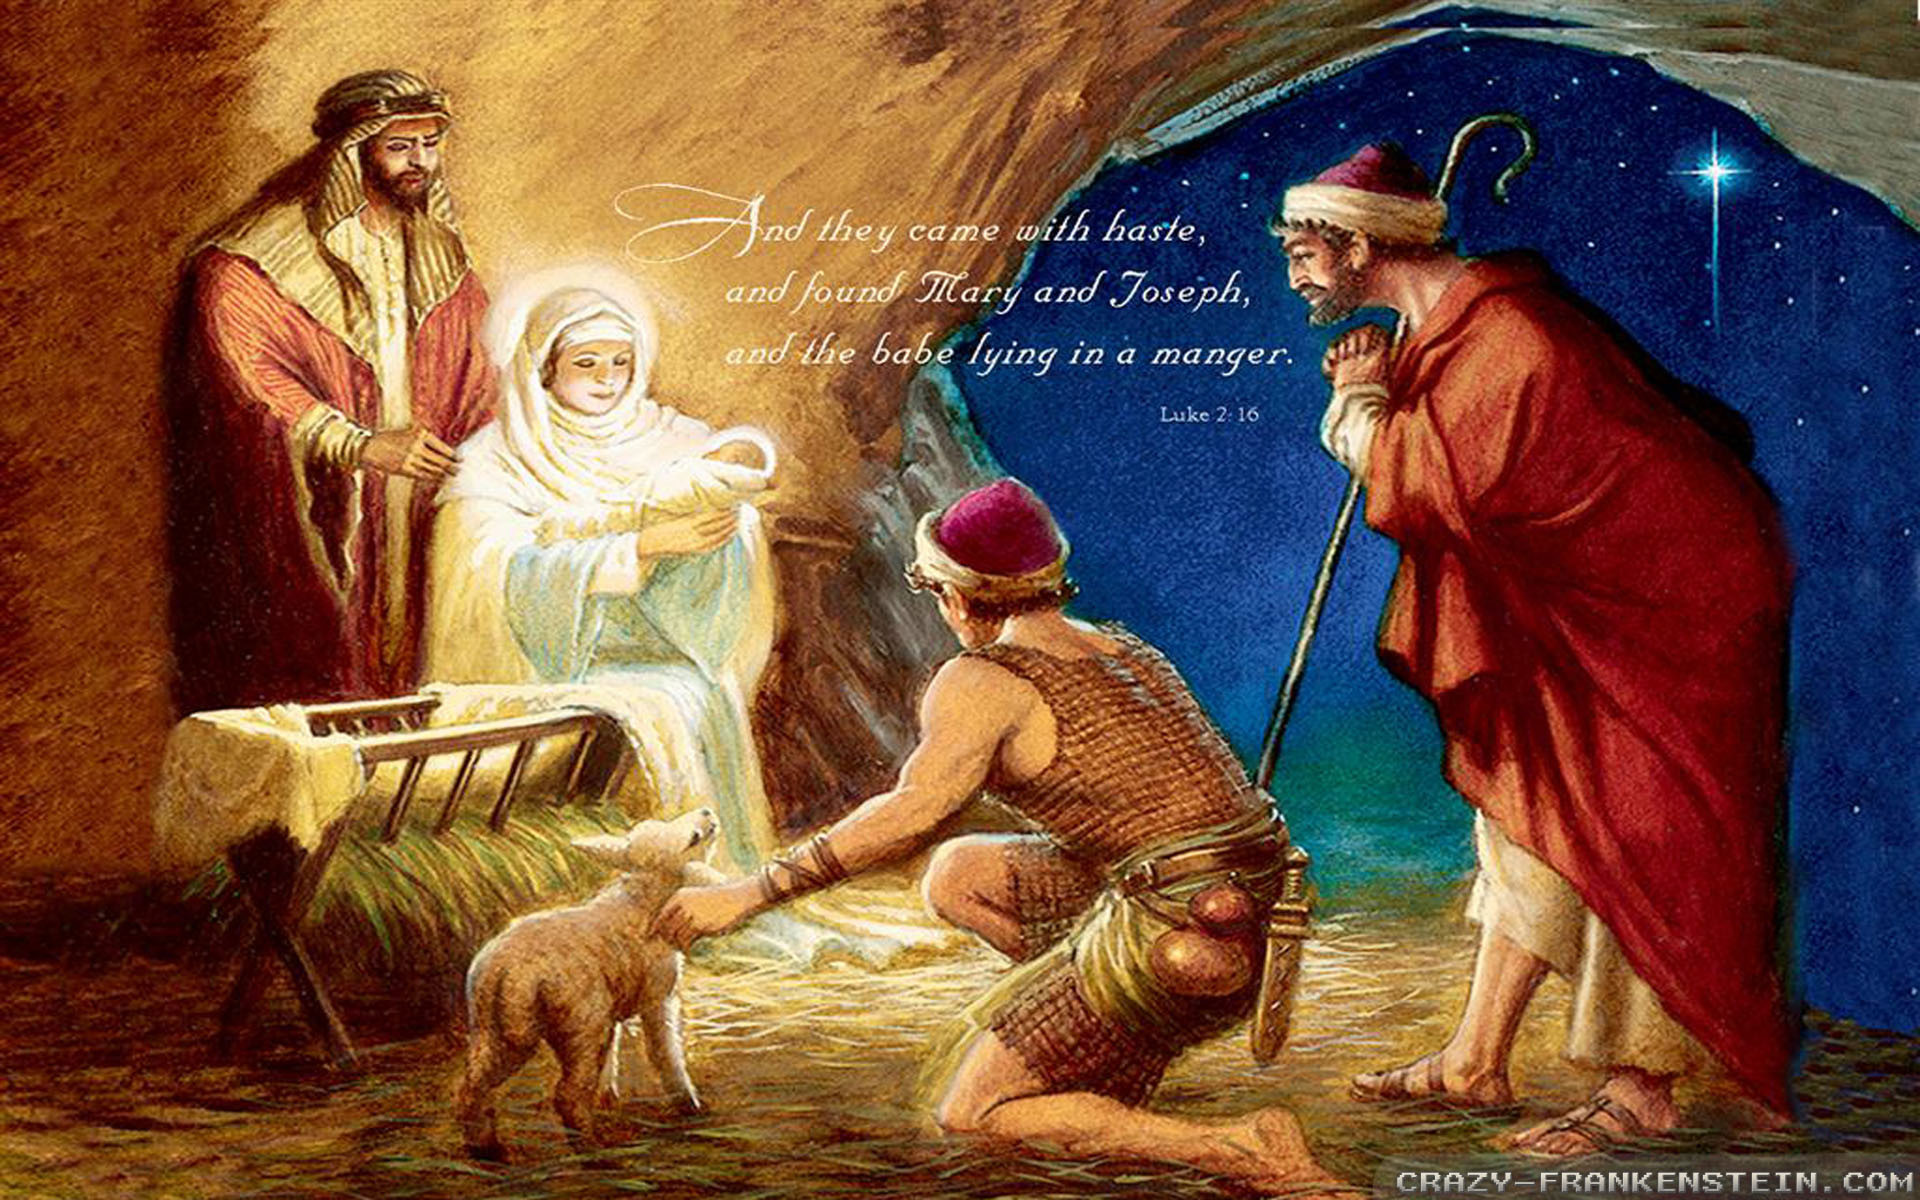 Wallpaper: Old Nativity Christian Christmas wallpapers. Resolution:  1024×768   1280×1024   1600×1200. Widescreen Res: 1440×900   1680×1050    1920×1200